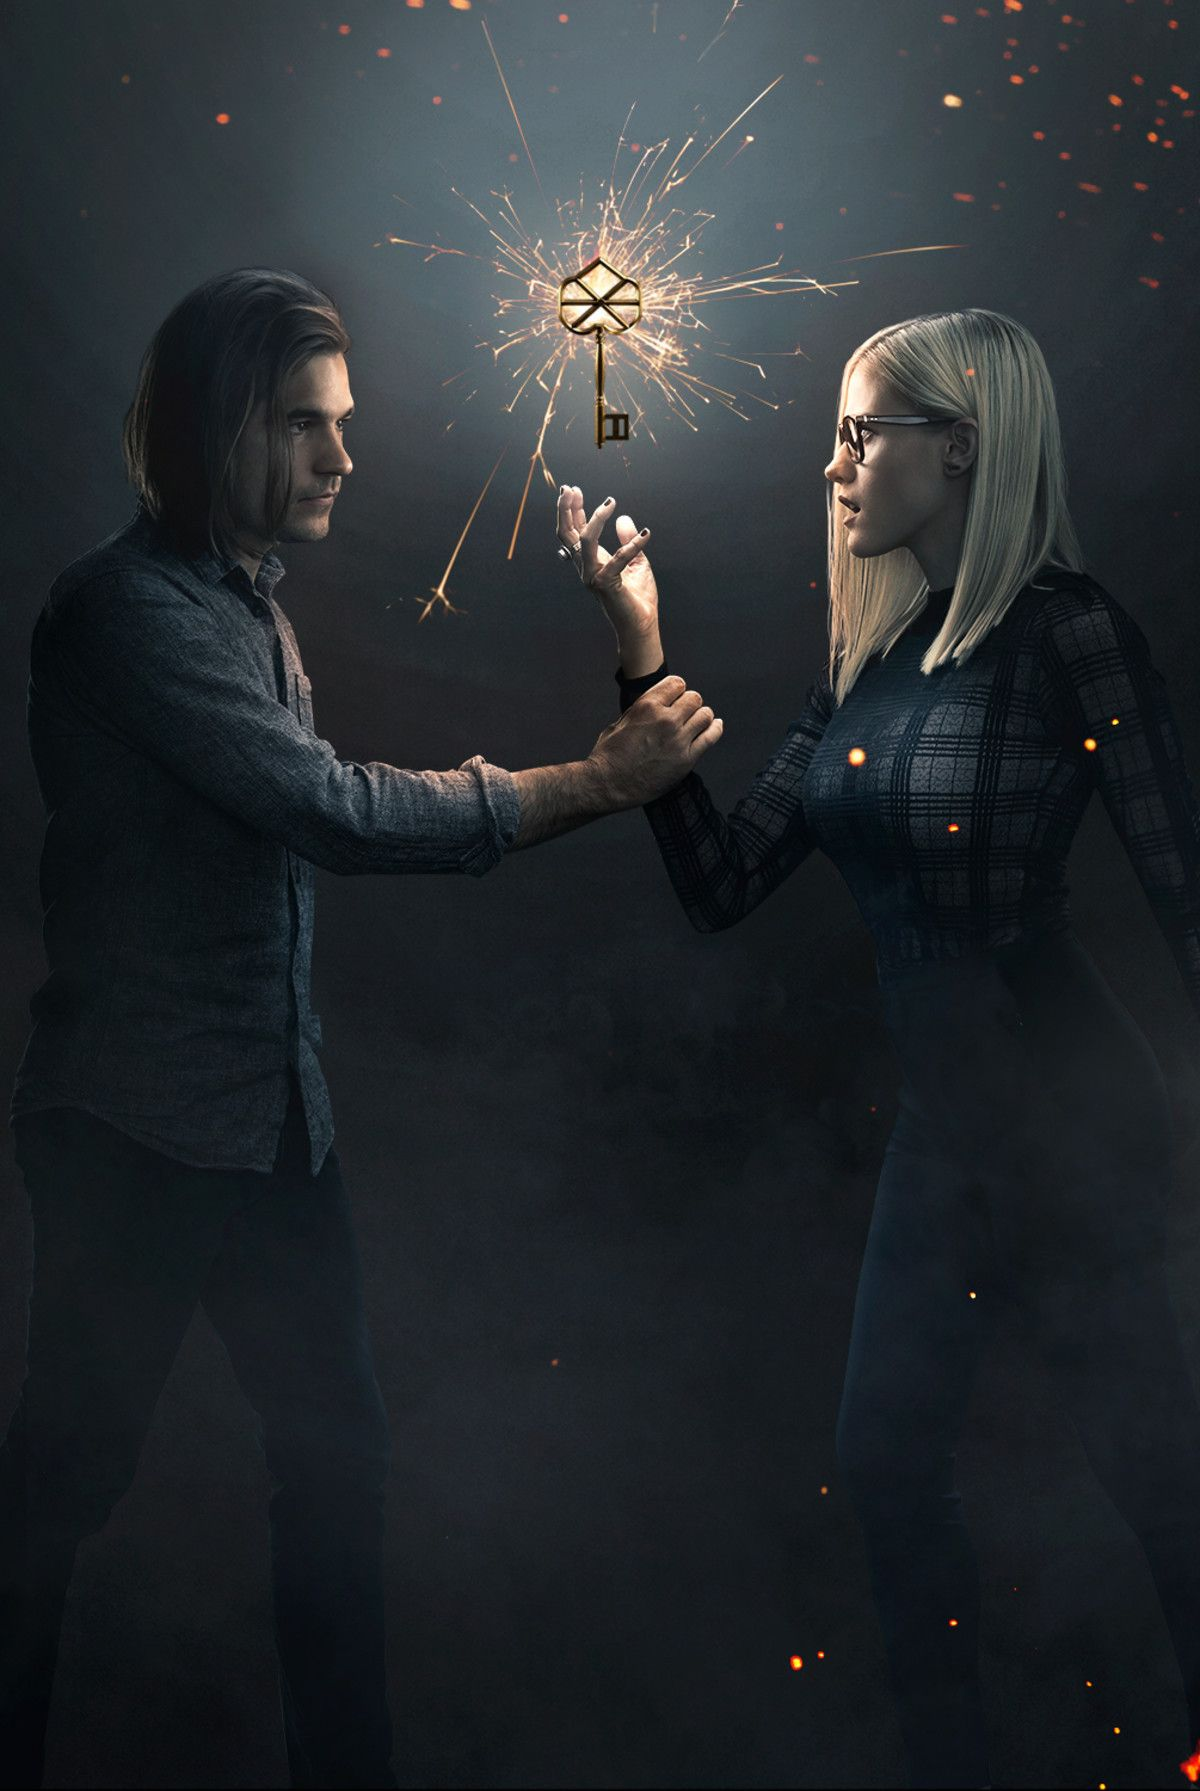 Do You Love Magic Is It In Your Soul The Magicians Syfy The Magicians Wattpad Book Covers